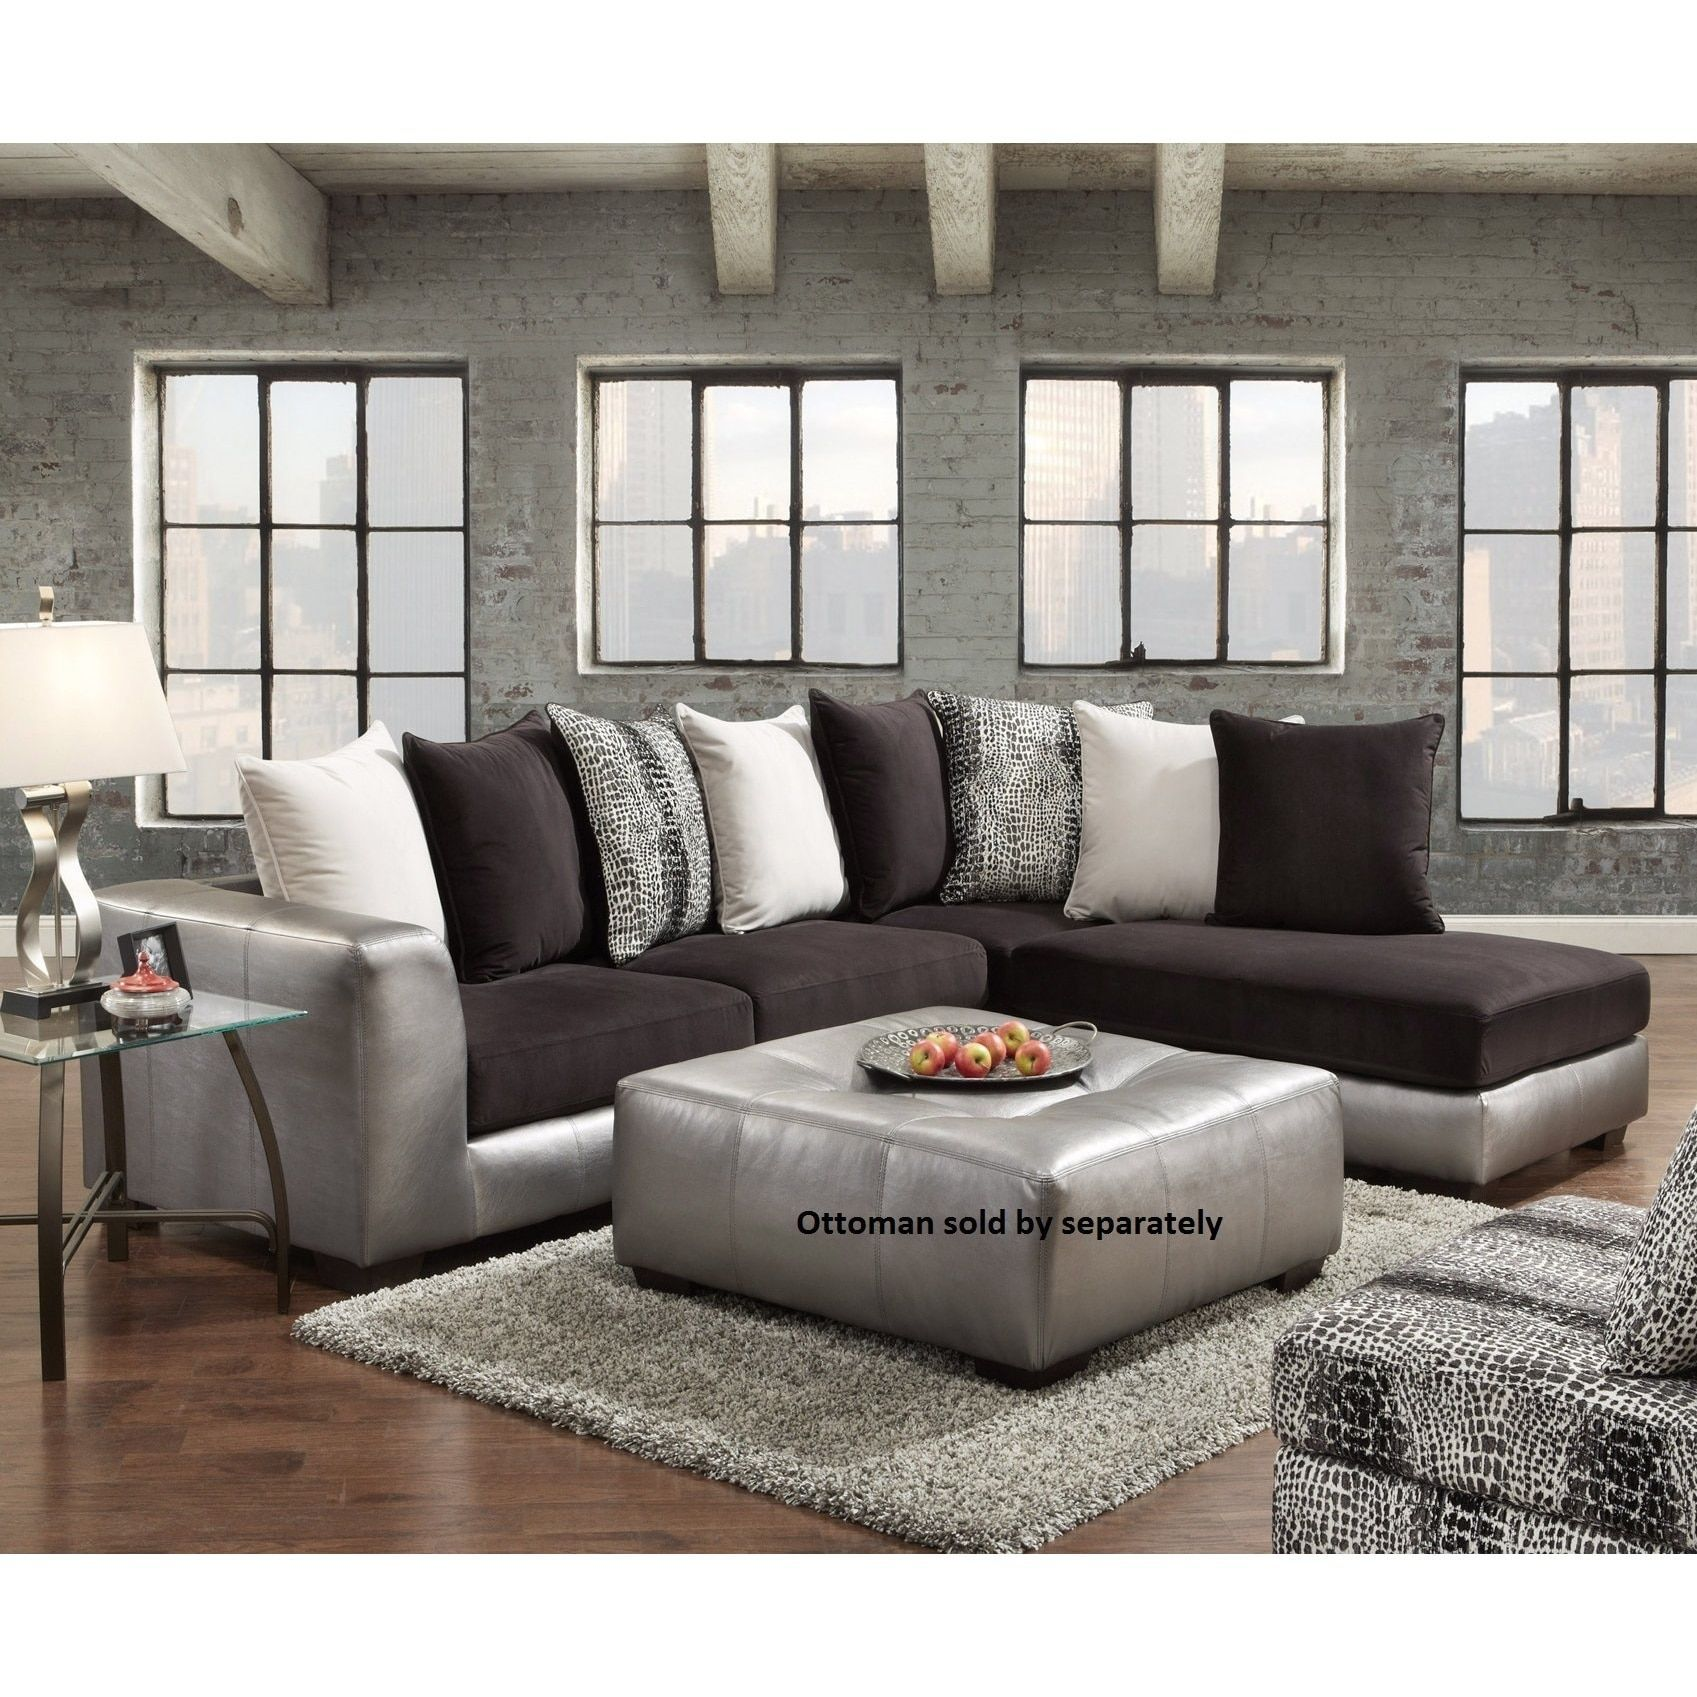 Astonishing Shimmer Pewter Microfiber Silver Grey Sectional Sofa Silver Beatyapartments Chair Design Images Beatyapartmentscom